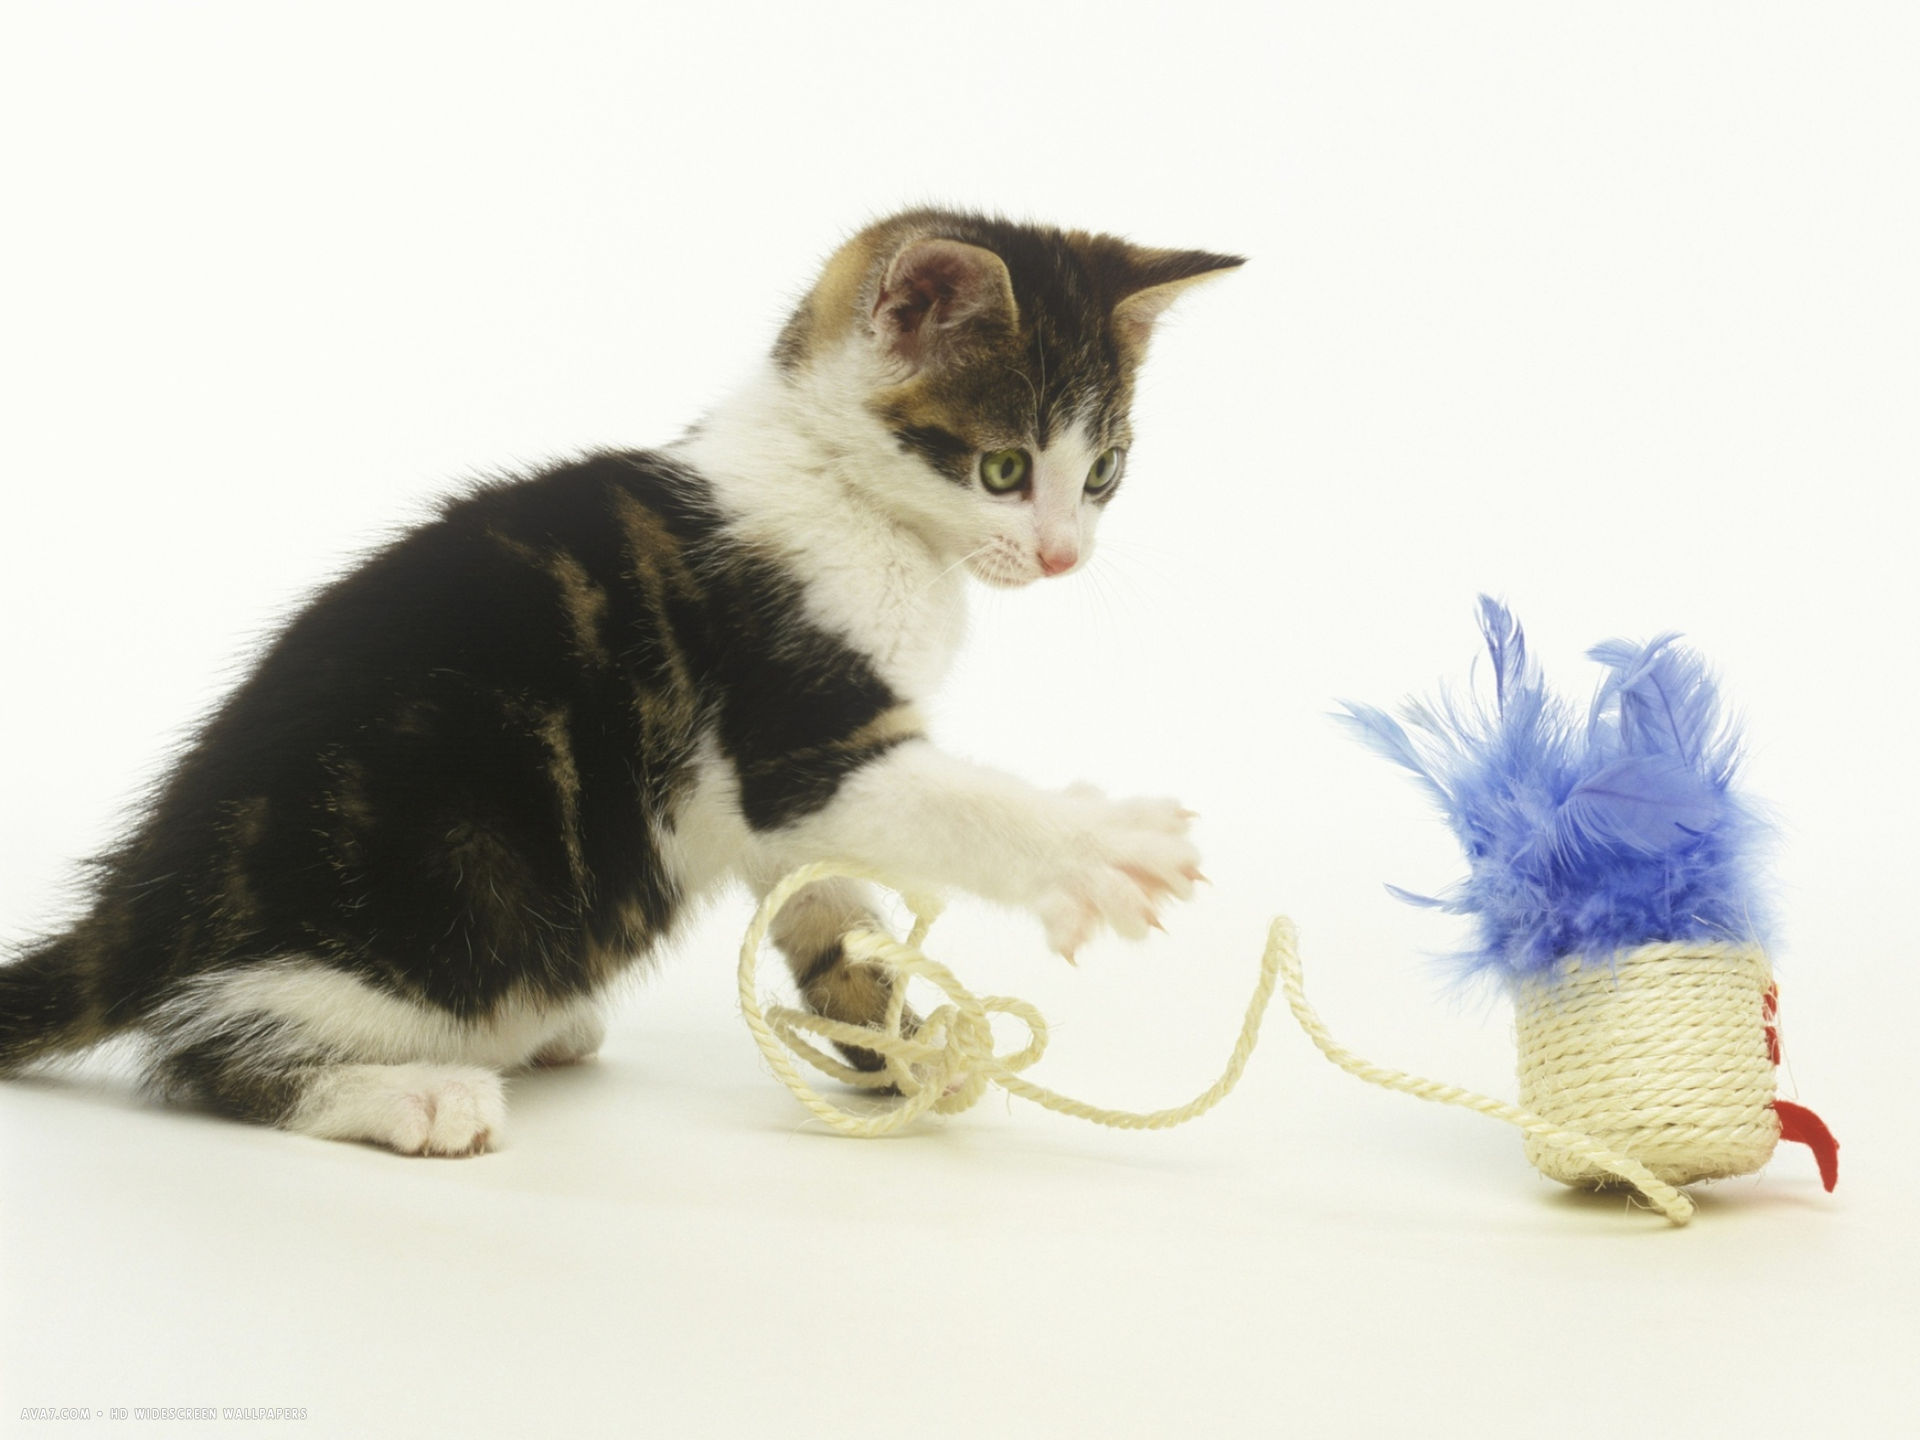 kitten playing with cat toy